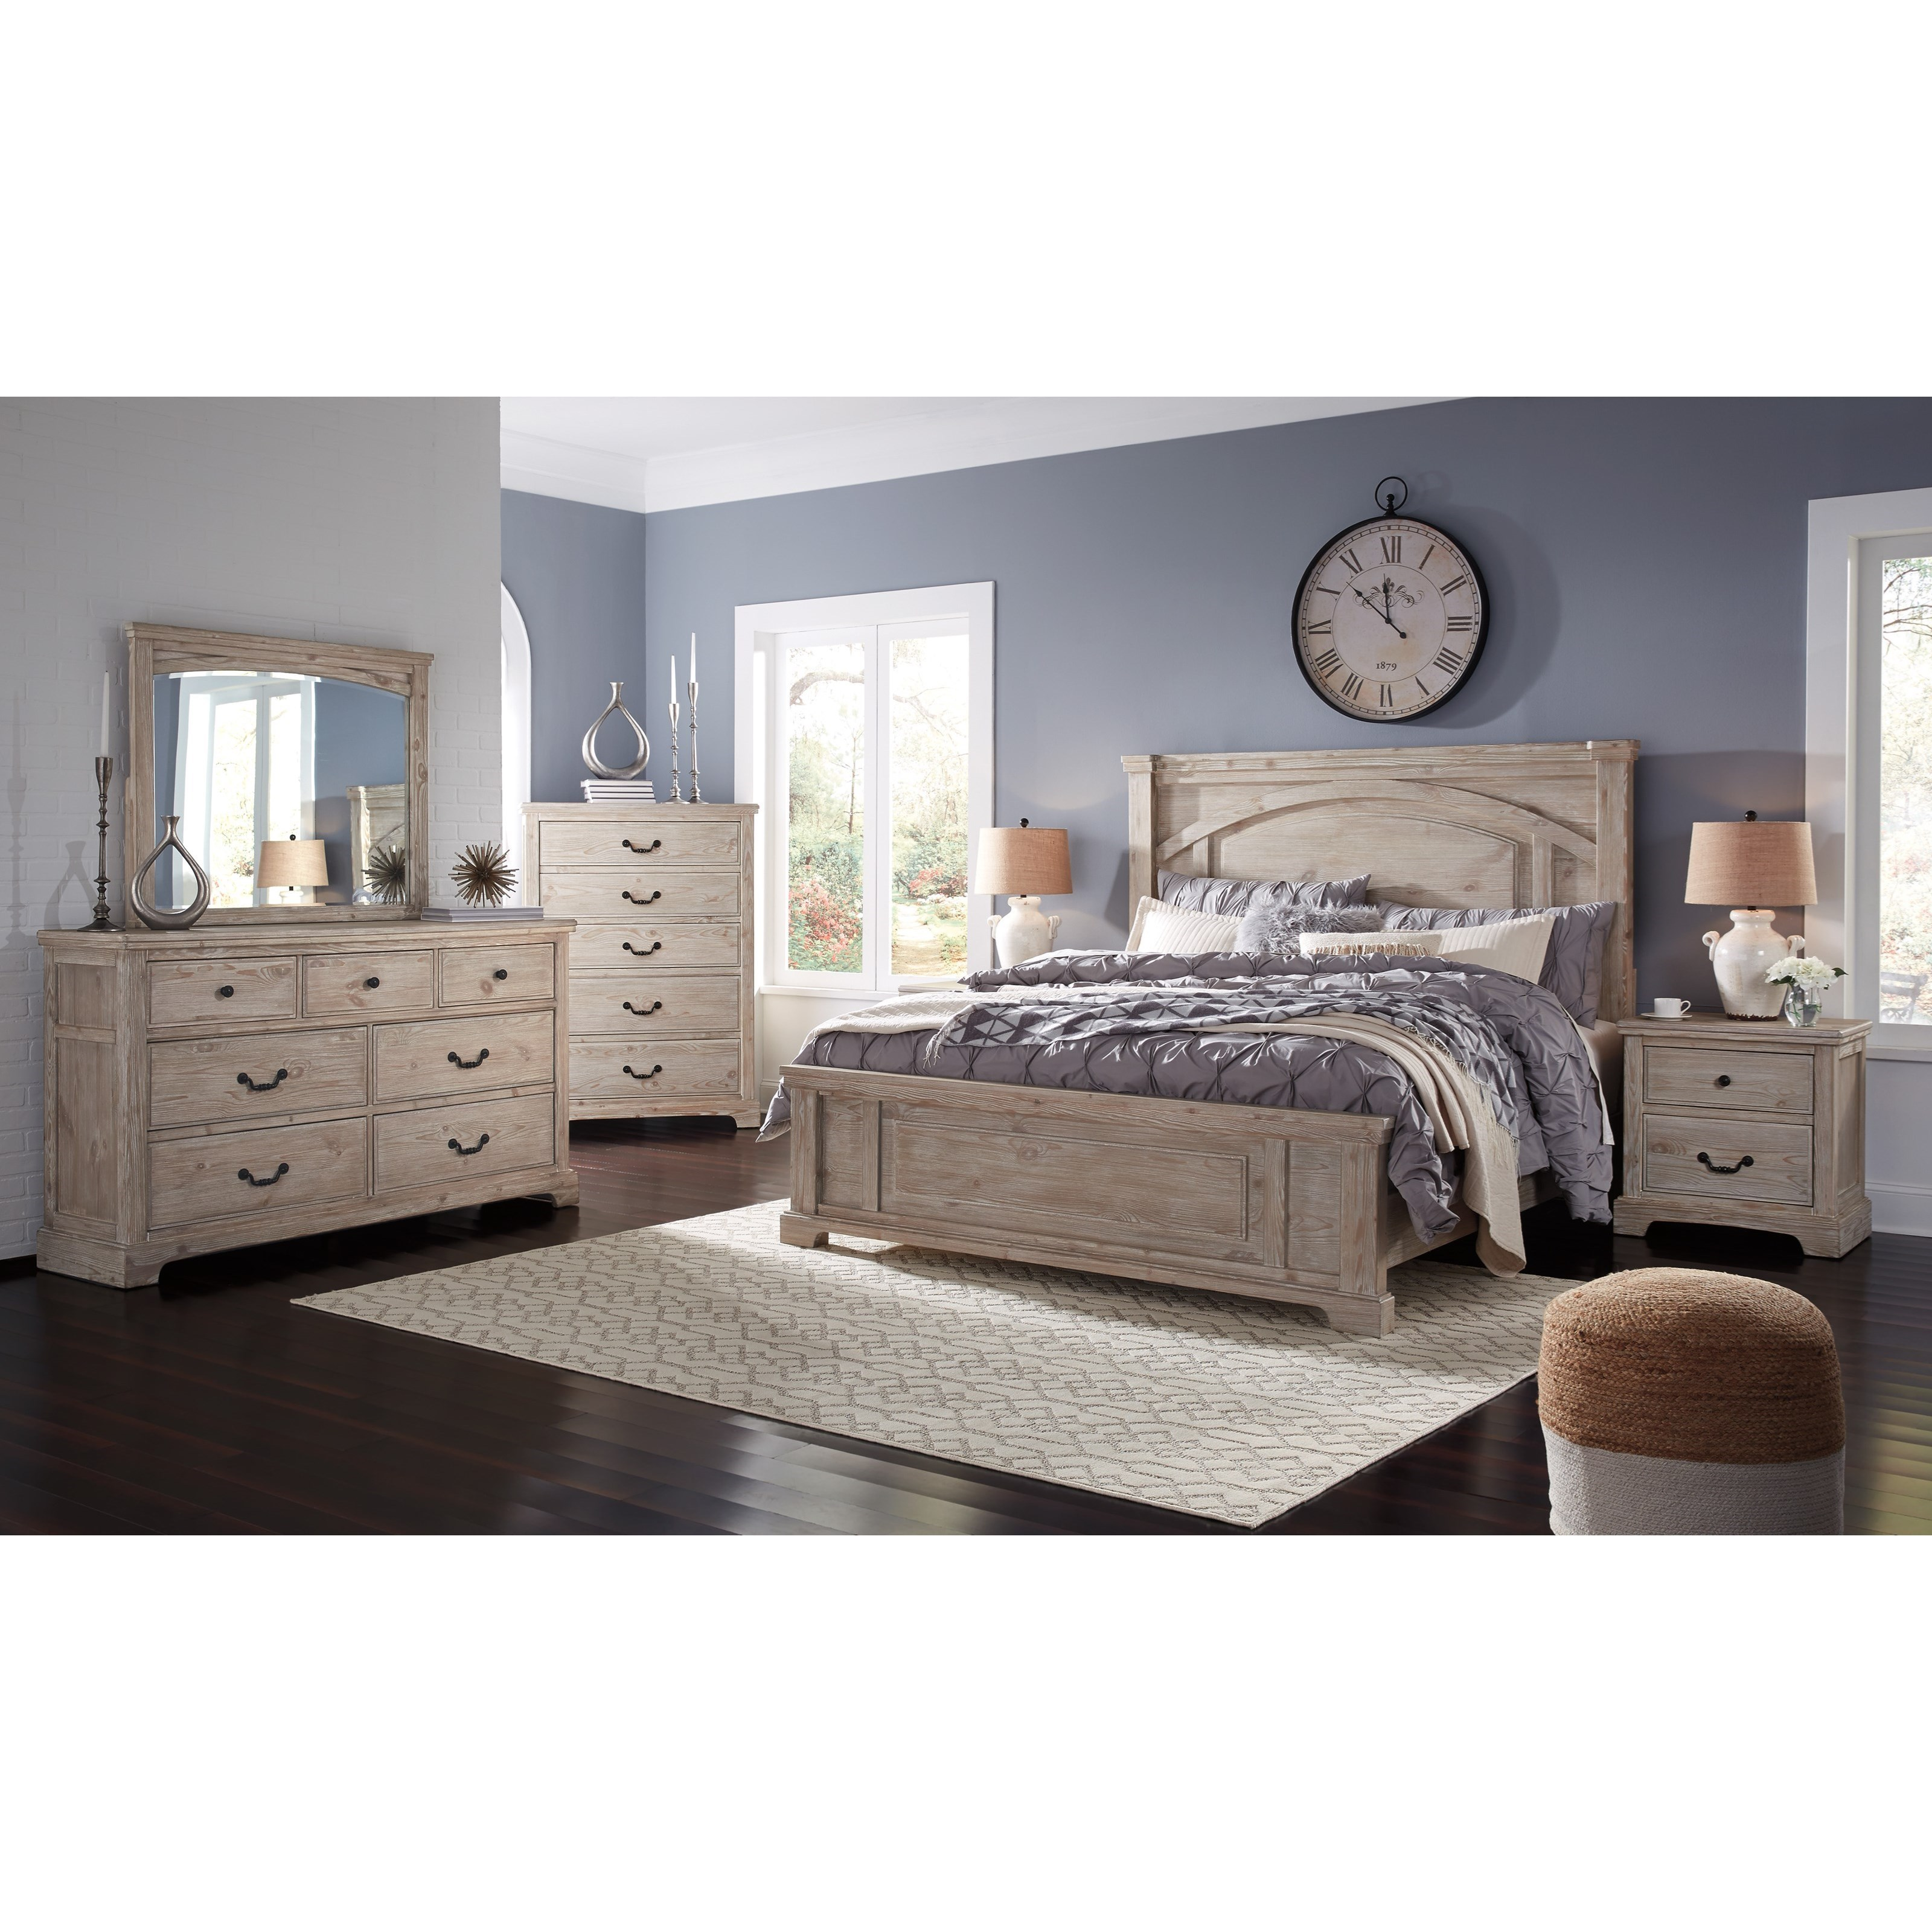 Bedroom Groups: Benchcraft By Ashley Charmyn Queen Bedroom Group